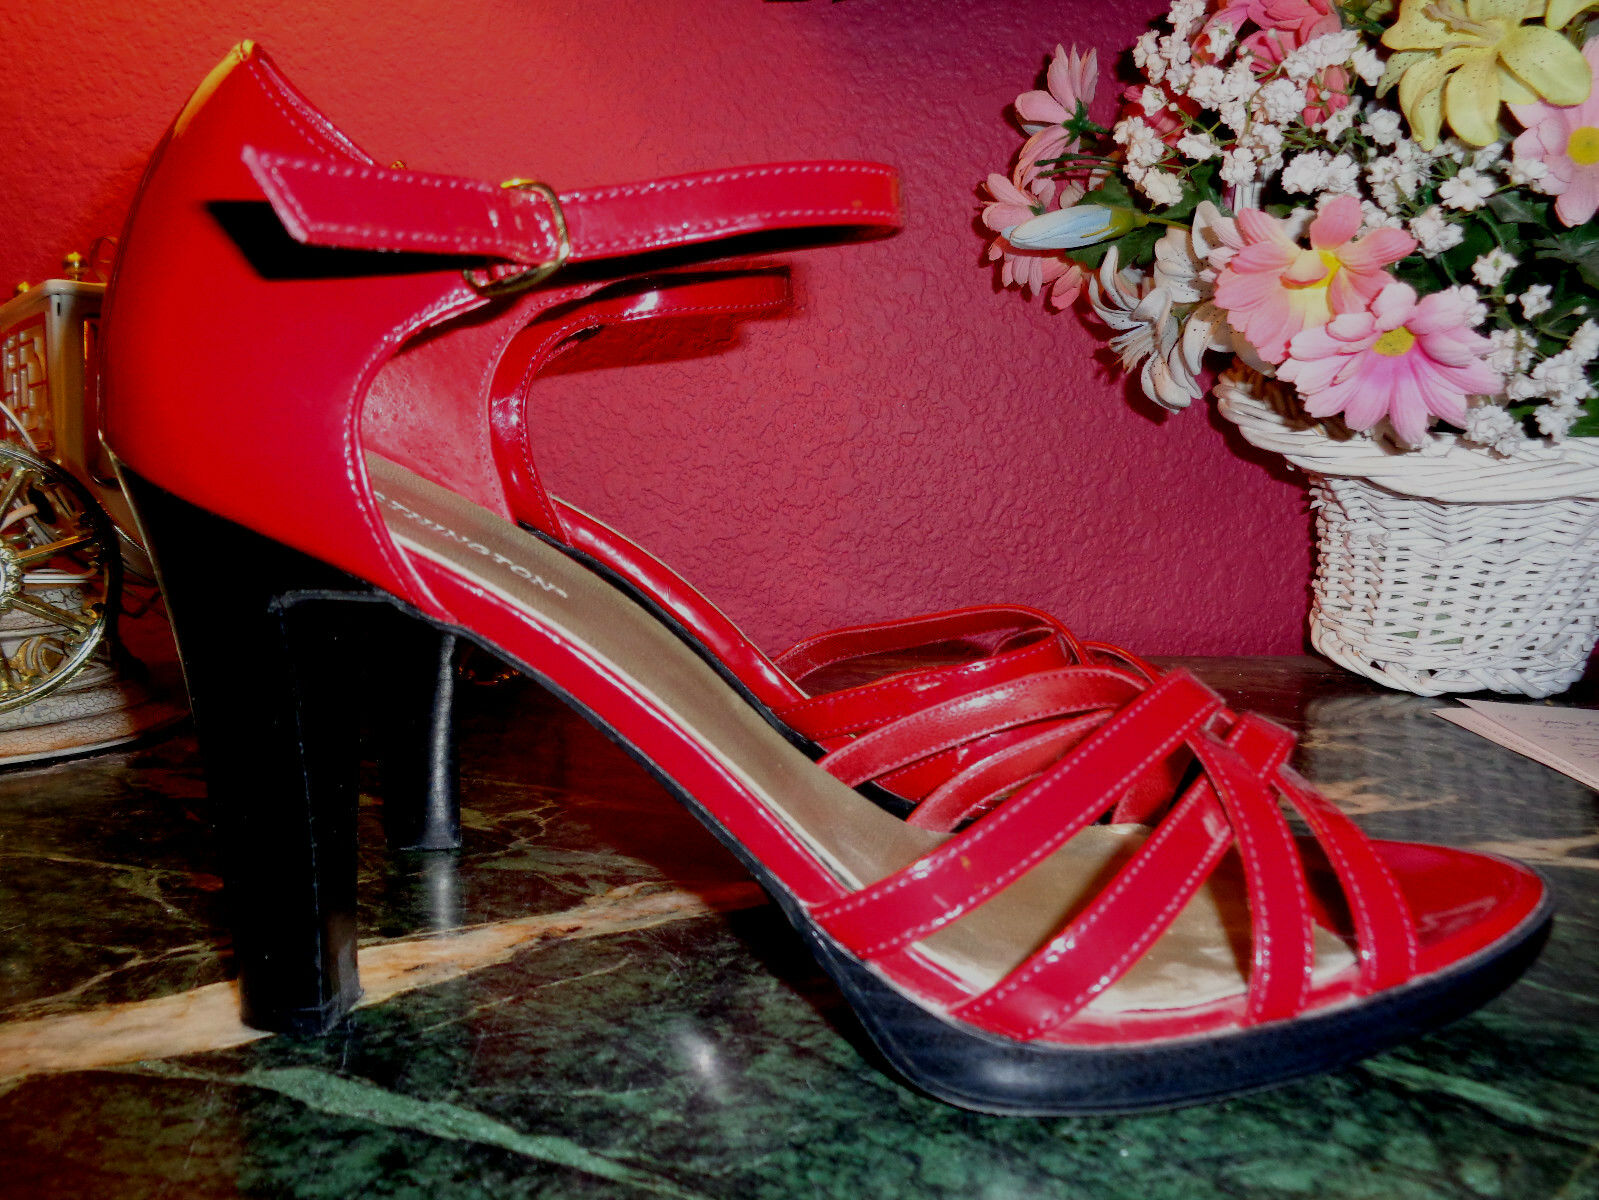 WORTHINGTON cherry red heels faux patent leather ankle strap black heels red 10M pristine 0975d5